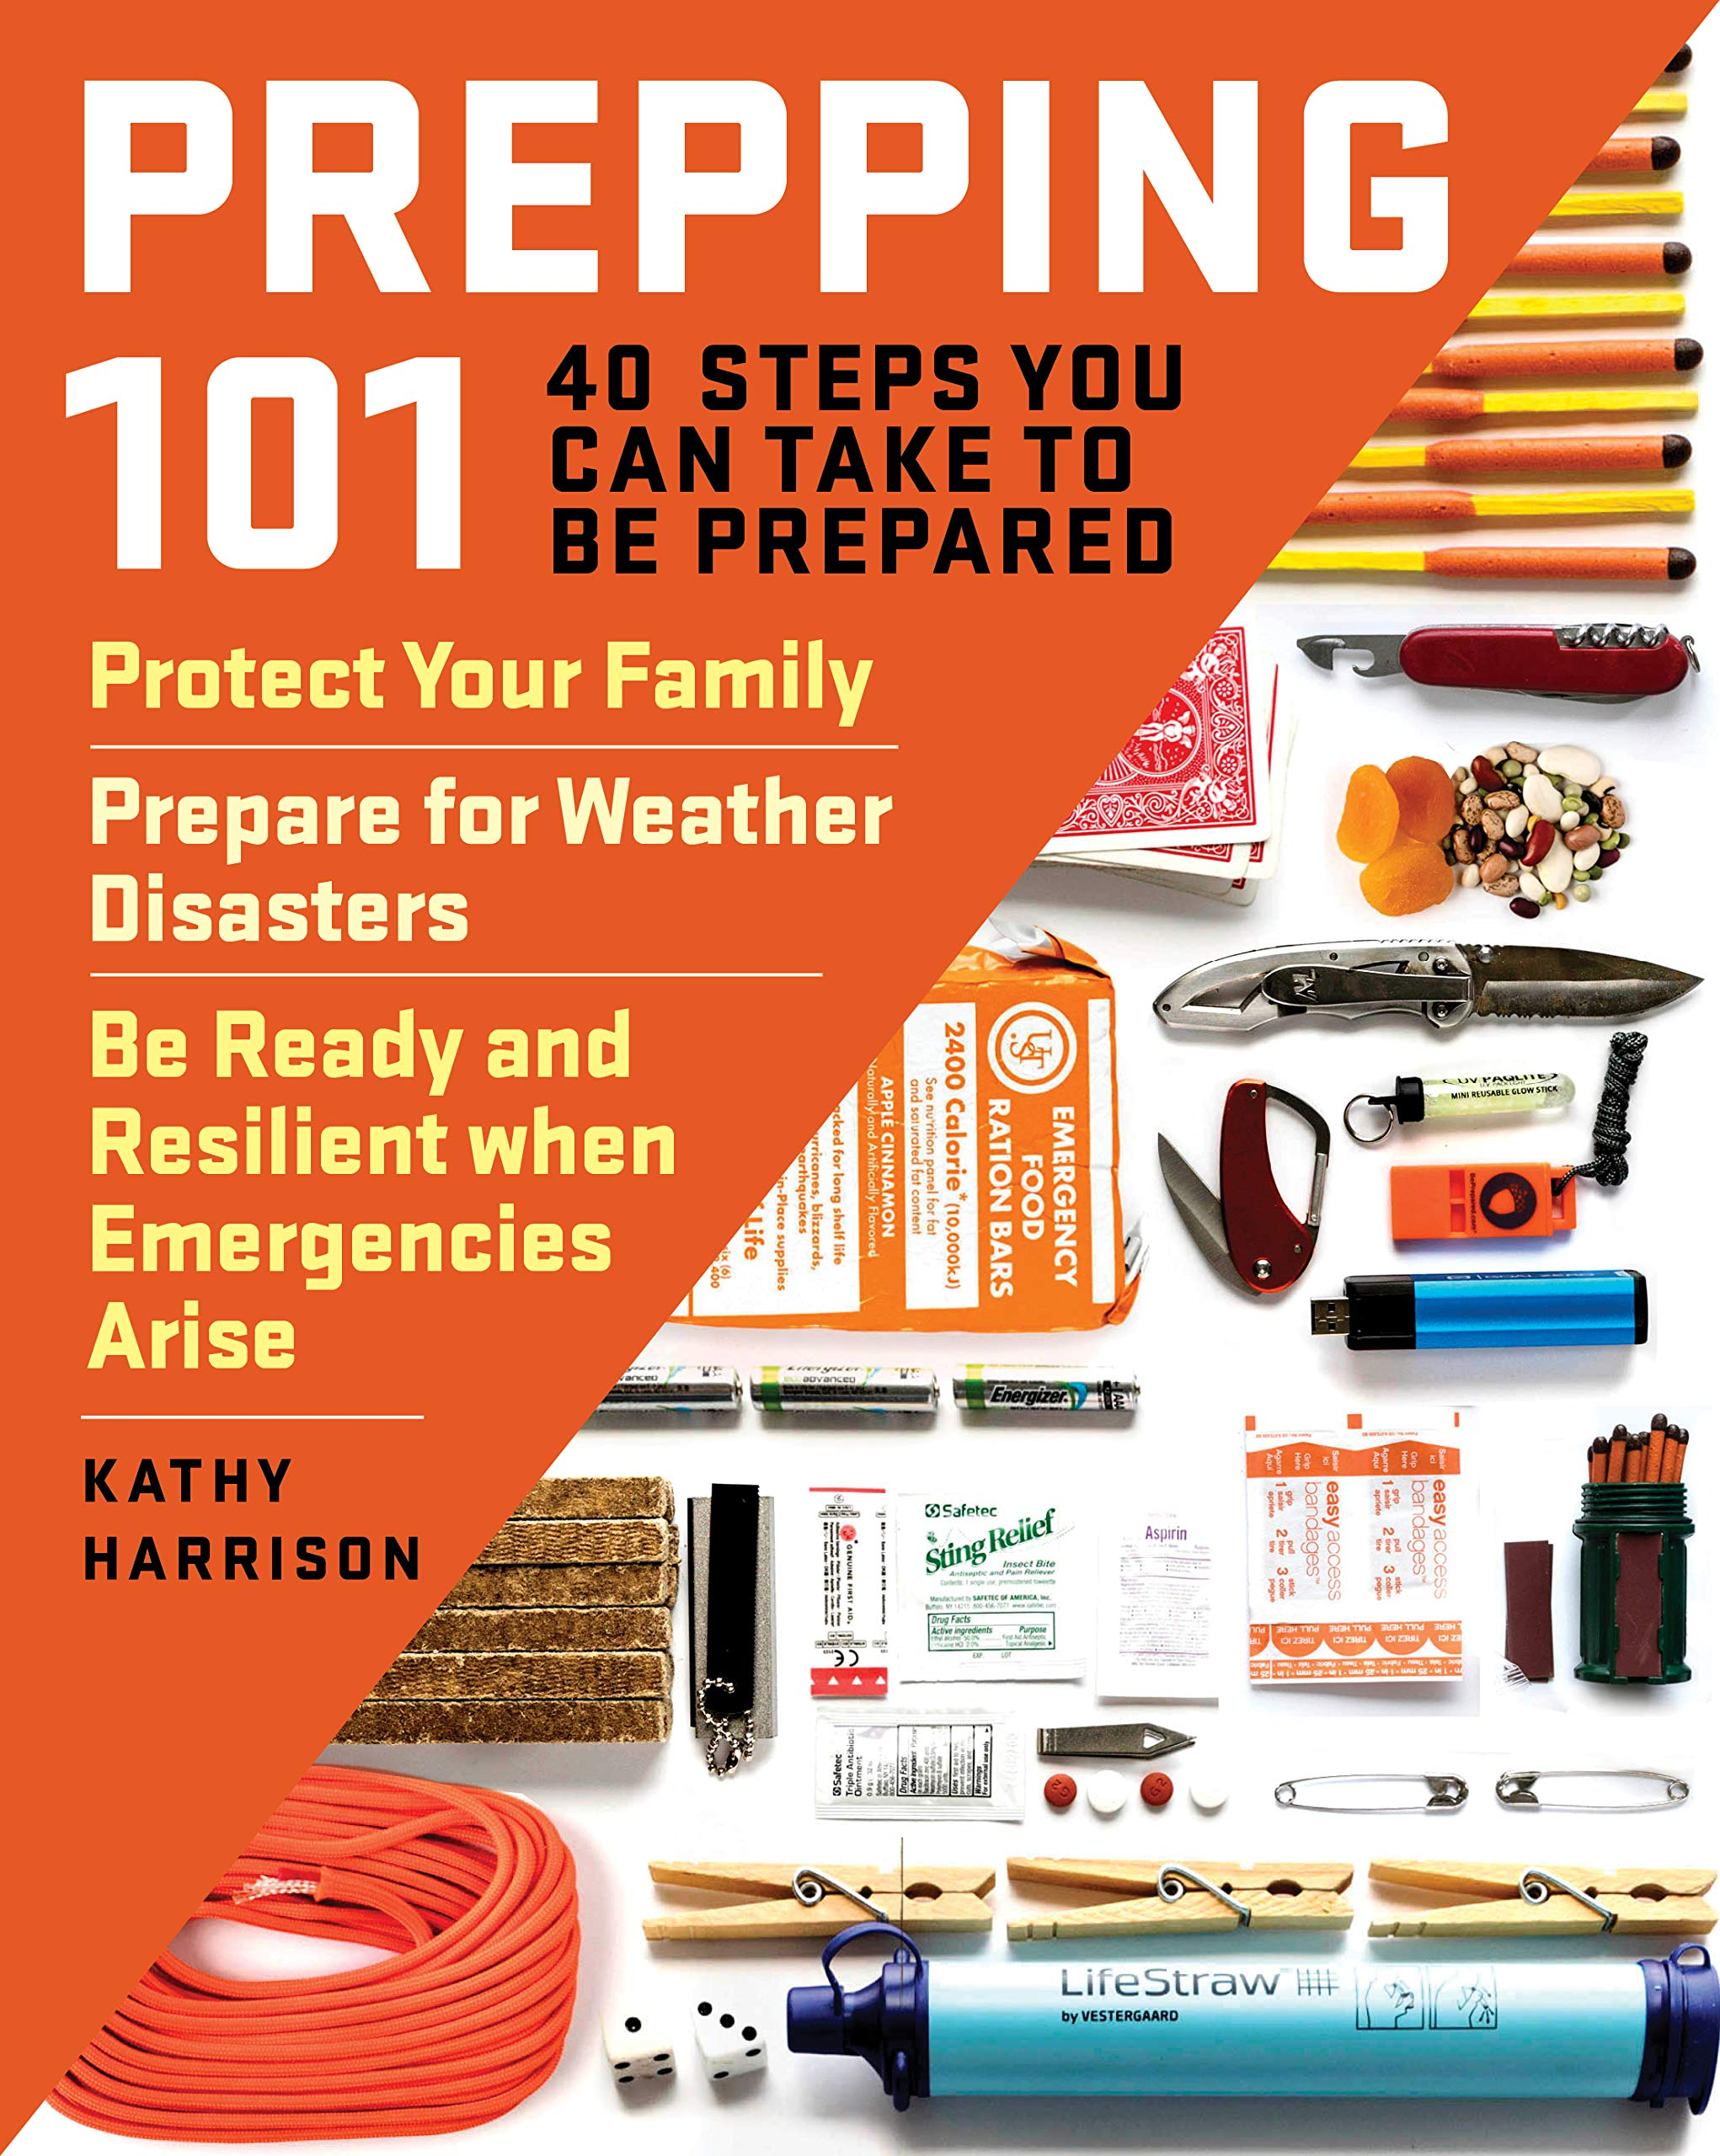 Image OfPrepping 101: 40 Steps You Can Take To Be Prepared: Protect Your Family, Prepare For Weather Disasters, Be Ready And Resil...